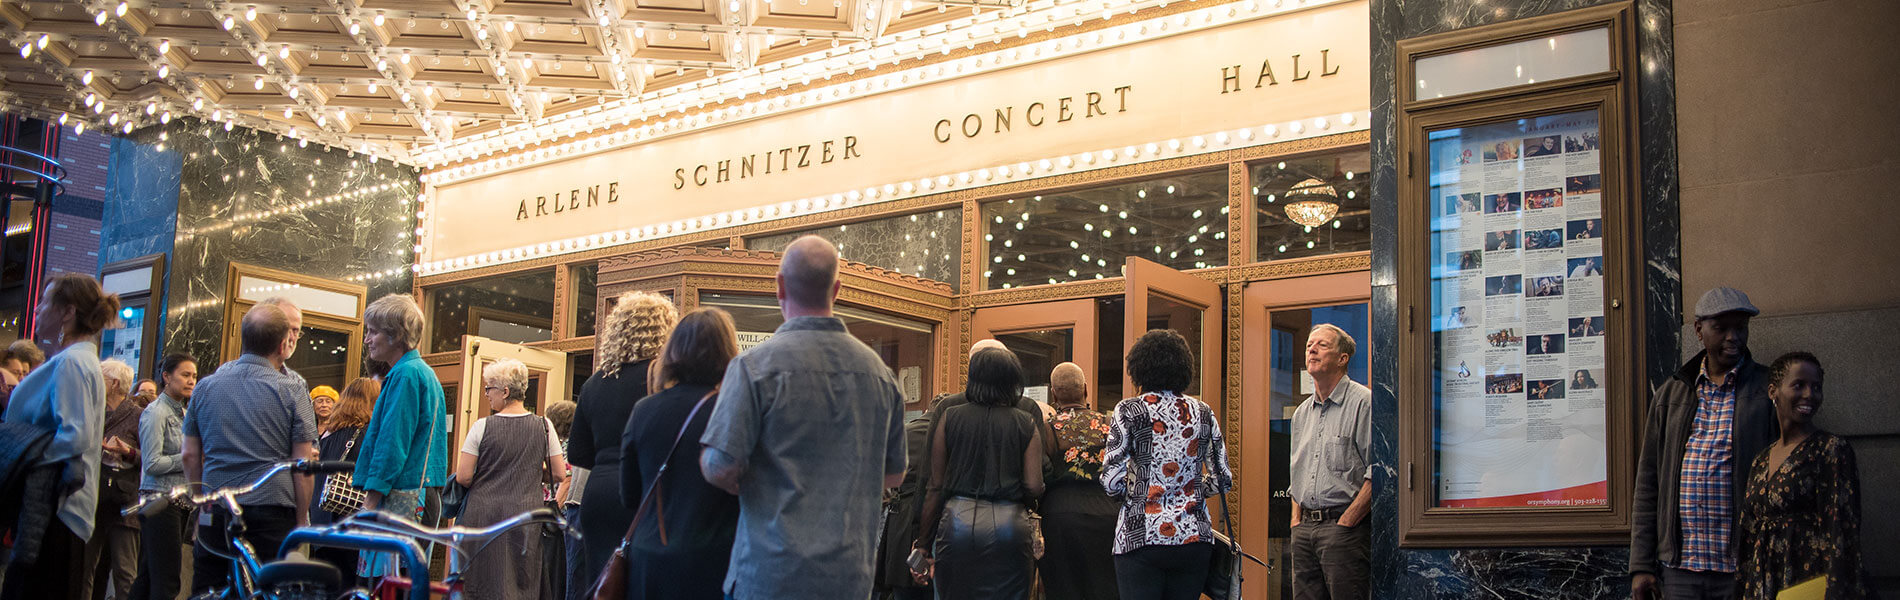 Frequently Asked Questions Oregon Symphony - Arlene schnitzer tickets